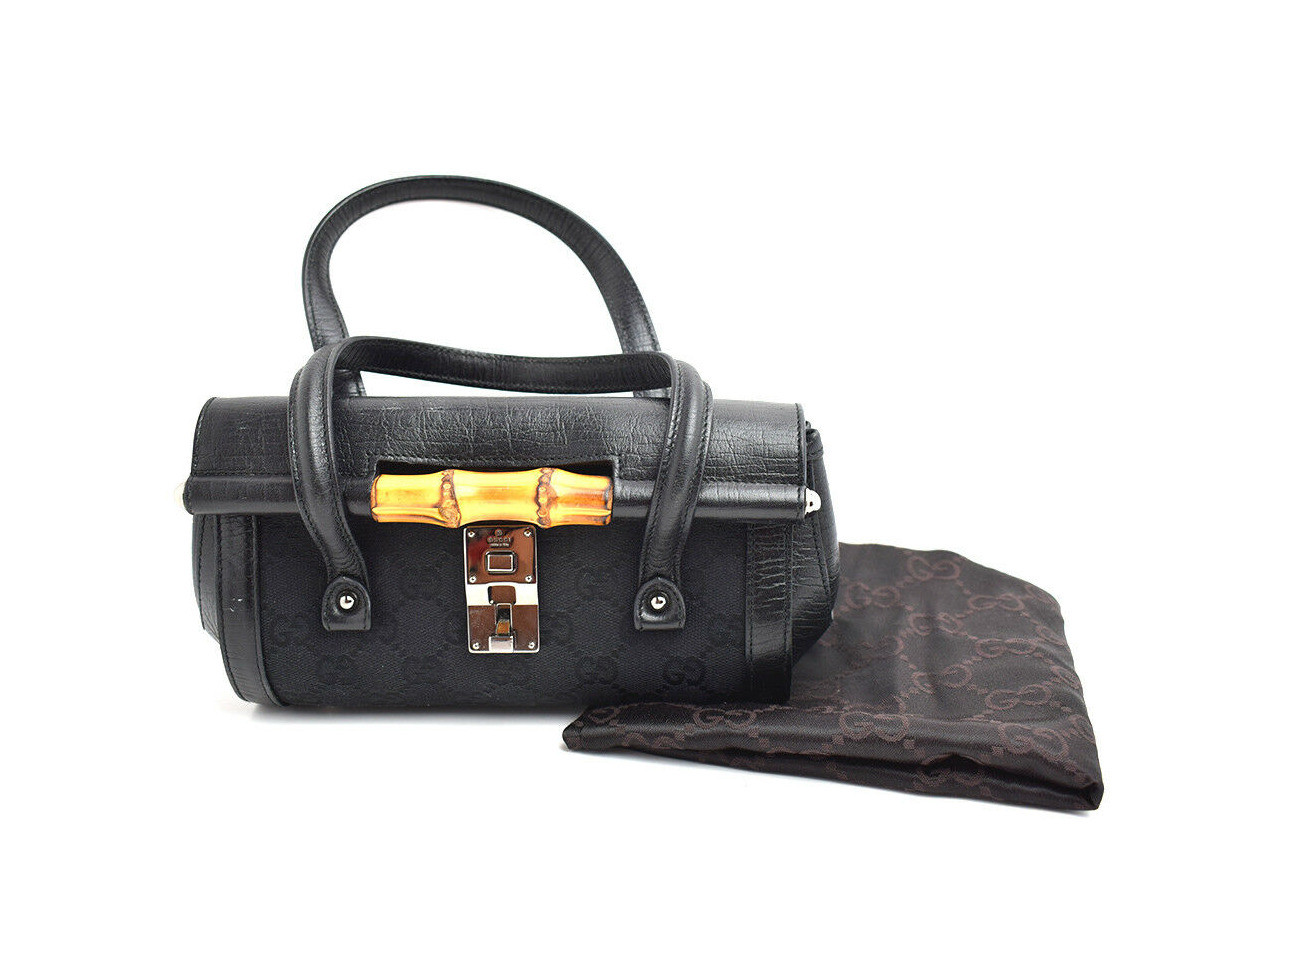 Rent Authentic Gucci Bamboo Collection Canvas And Leather Evening Bag Handbag Black In London Rent For 0 00 Day